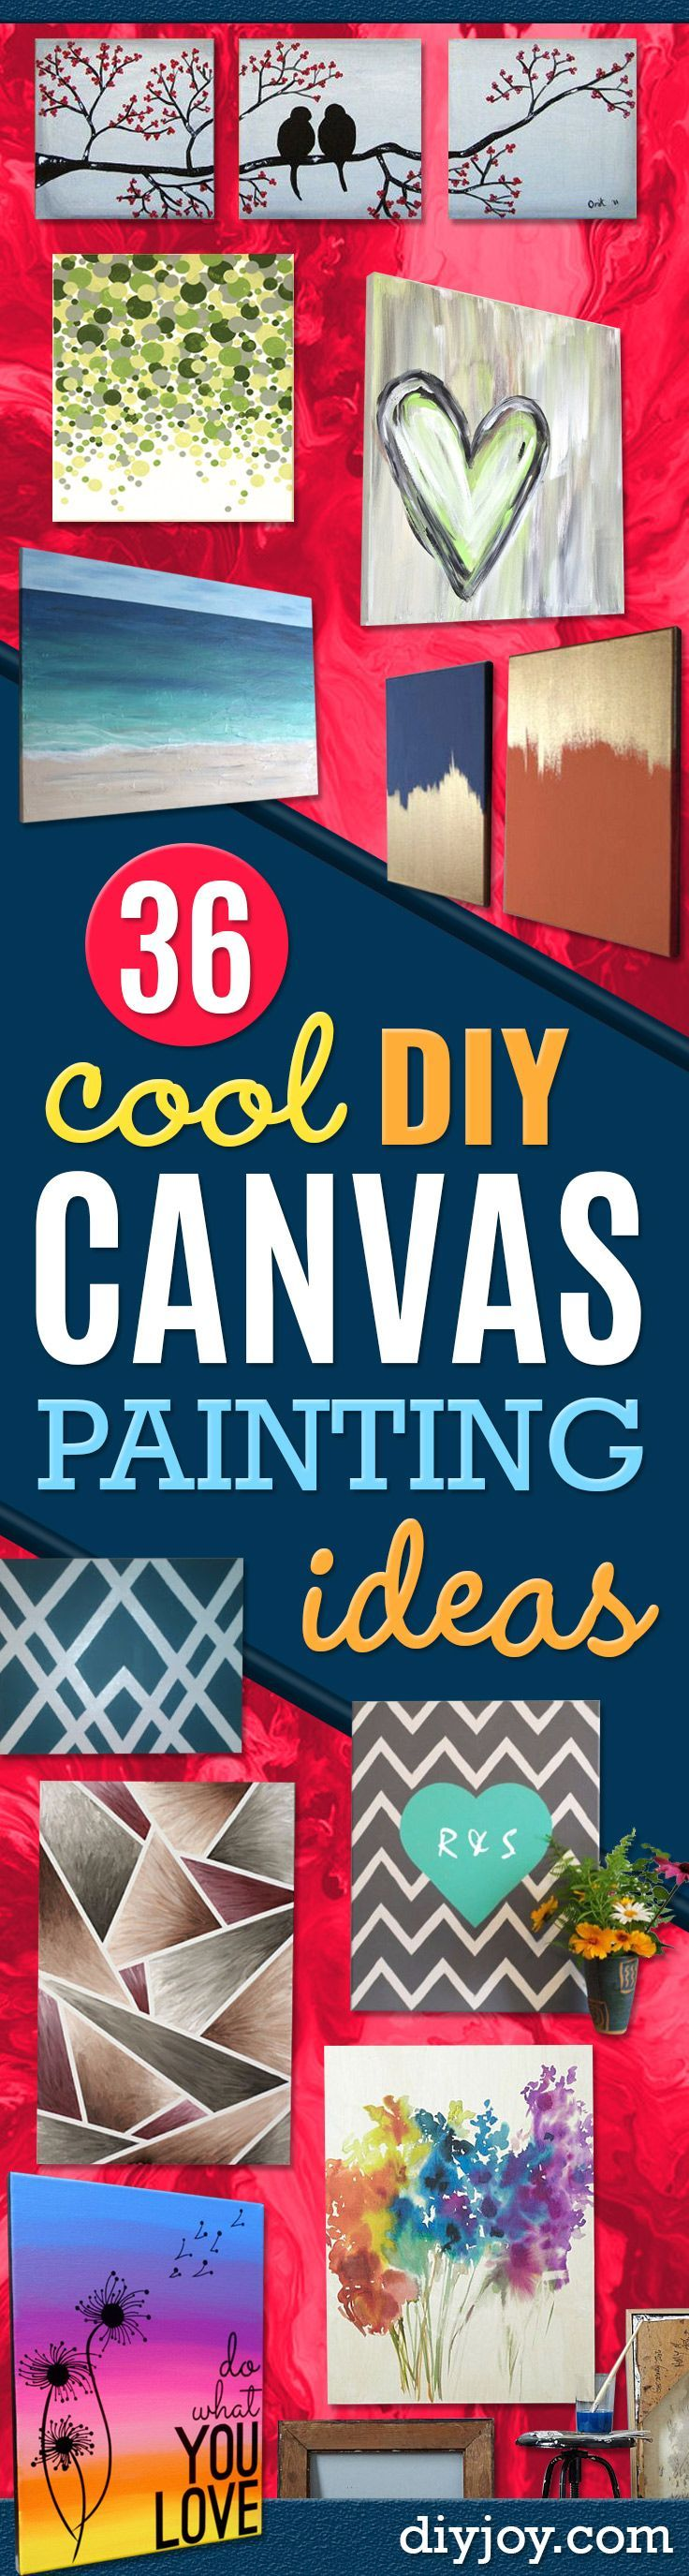 17 best ideas about canvas paintings on pinterest - Cool designs to paint ...